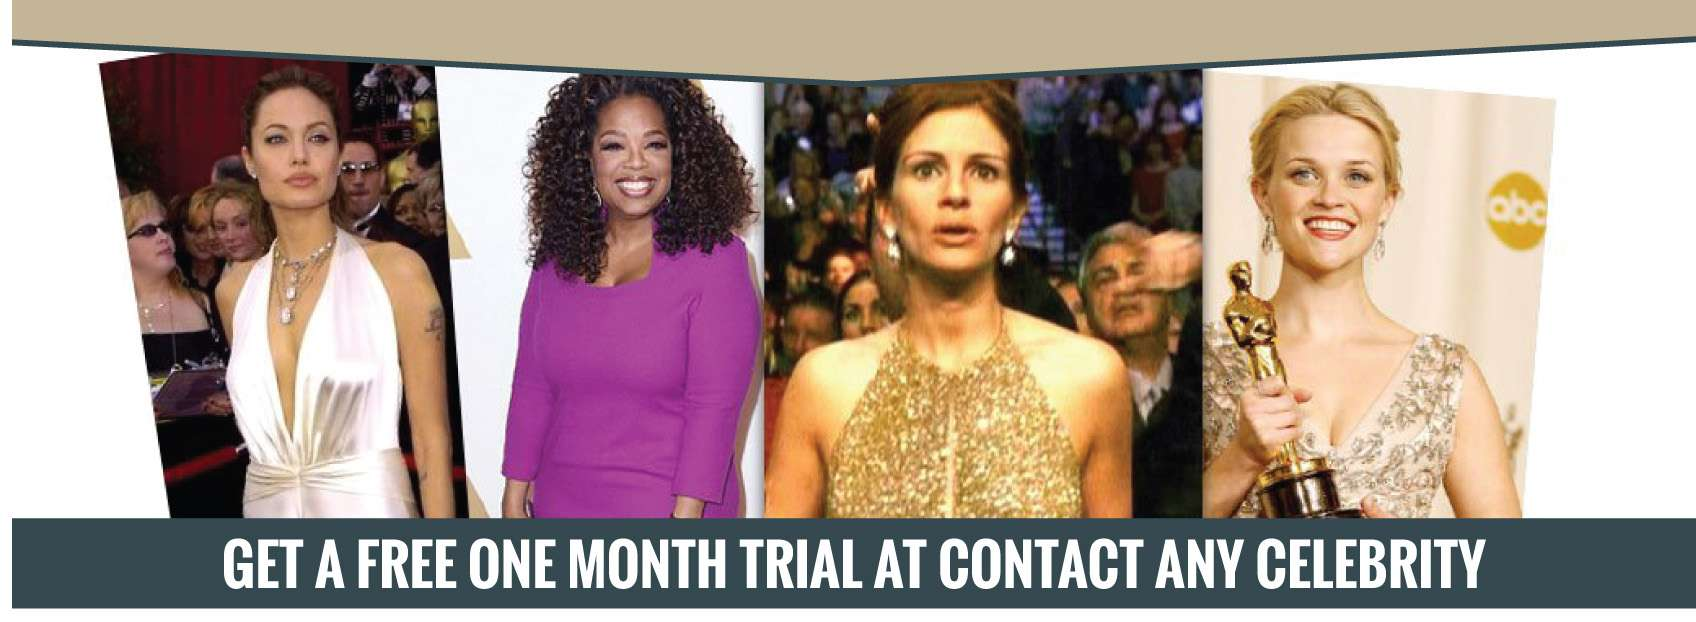 Contact any celebrity free trial